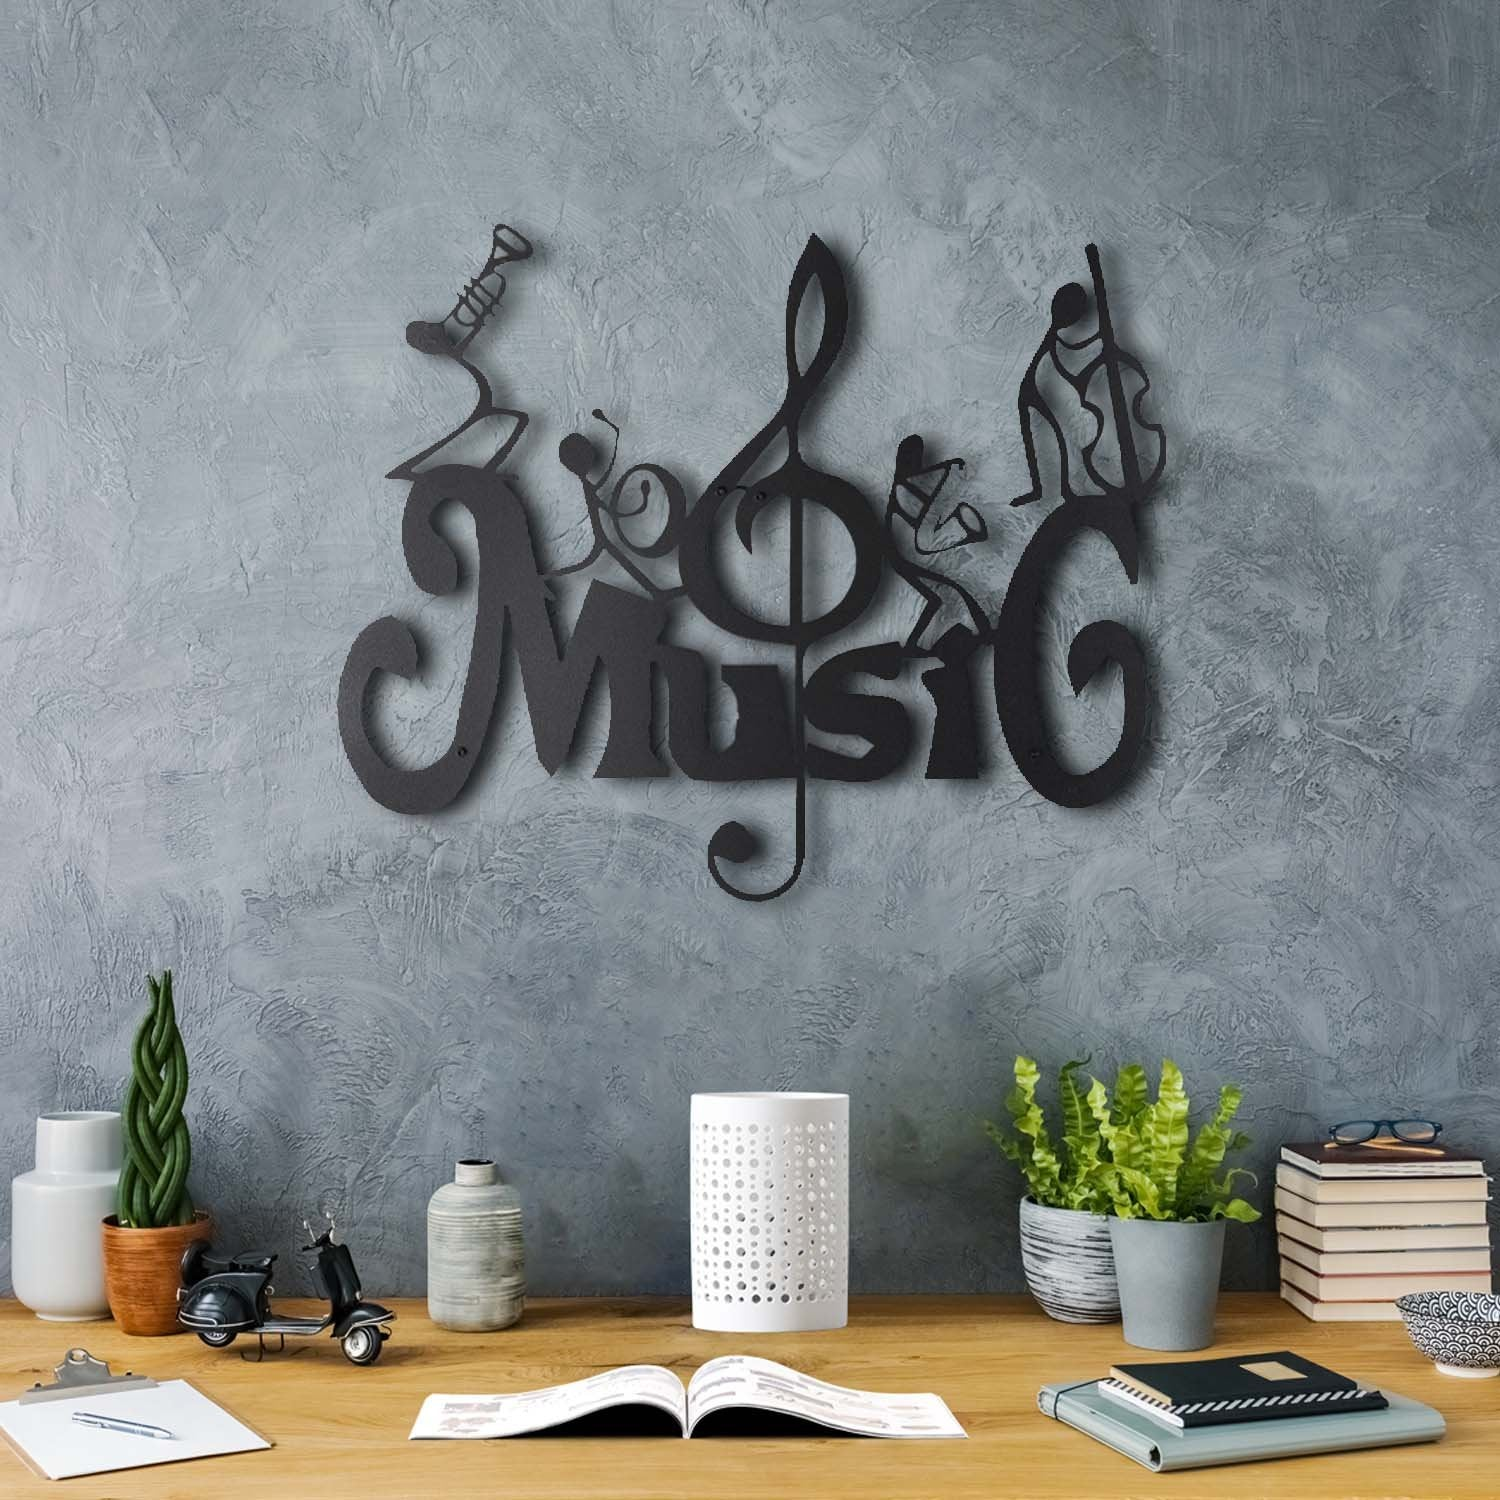 Bystag metal dekoratif duvar aksesuarı müzik- Bystag metal wall art-wall art-wall decor-metal wall decor-music